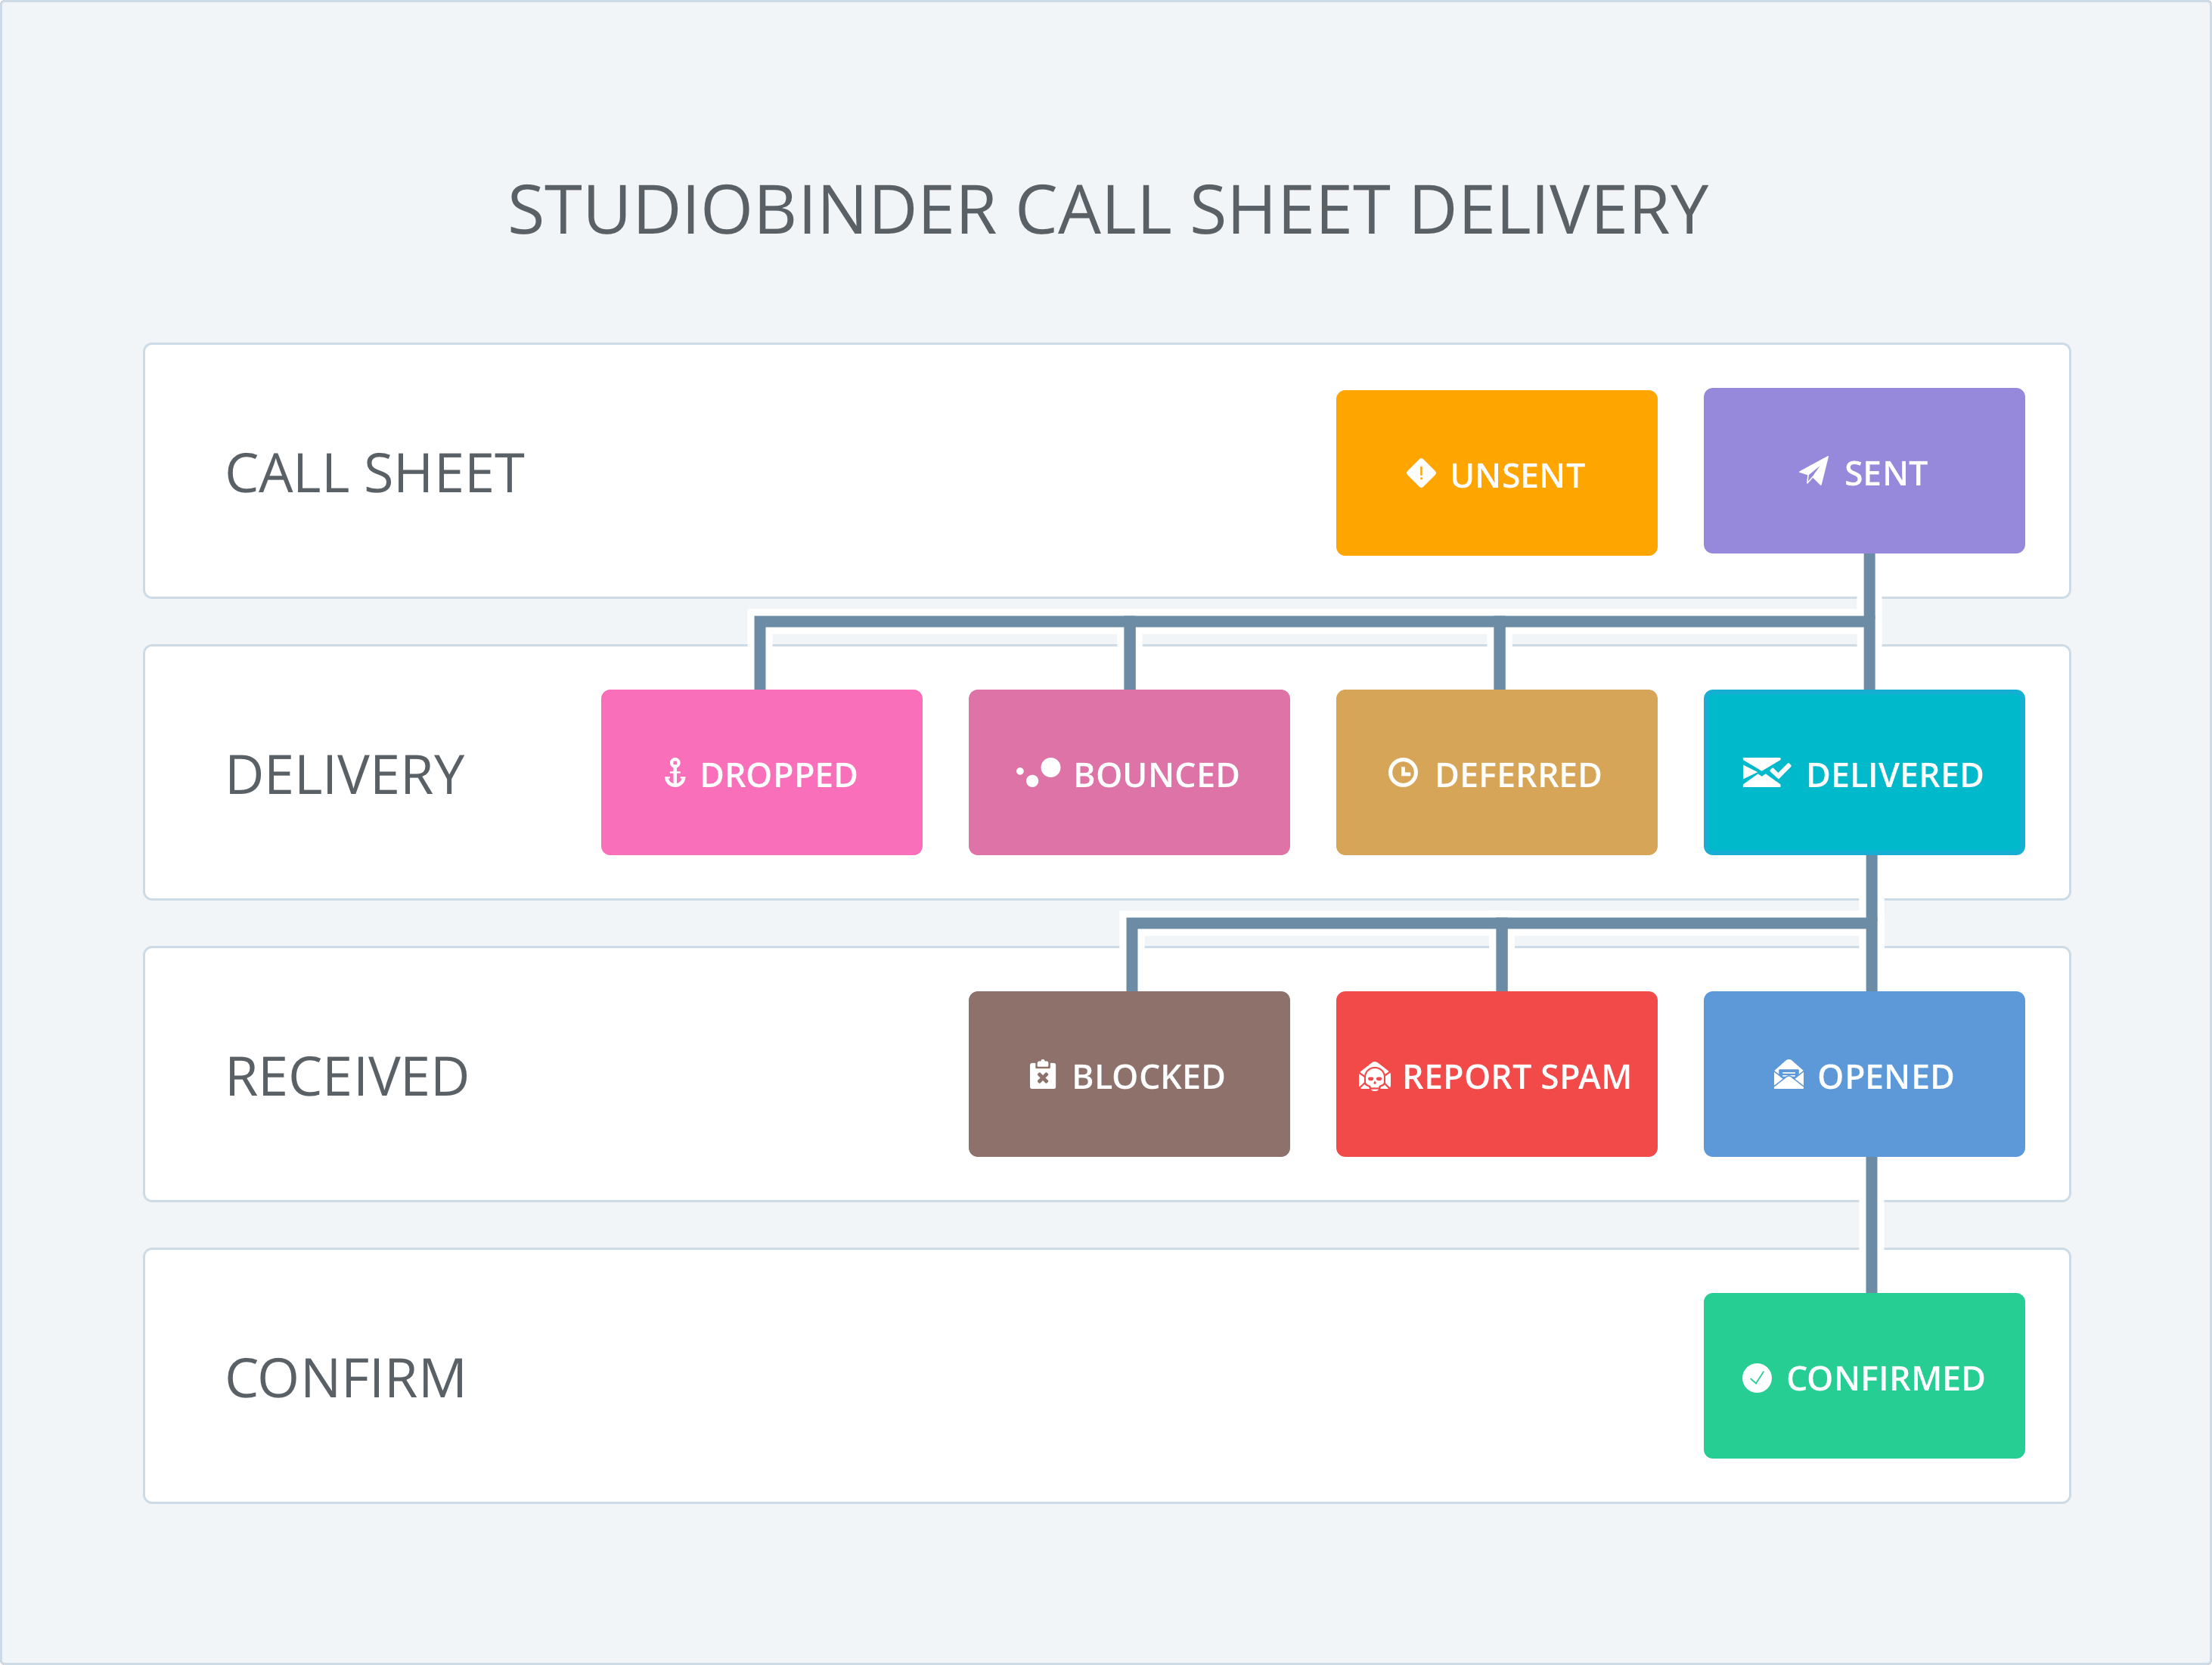 StudioBinder Call Sheet Email Delivery Workflow Diagram - Track Call Sheet Confirmations